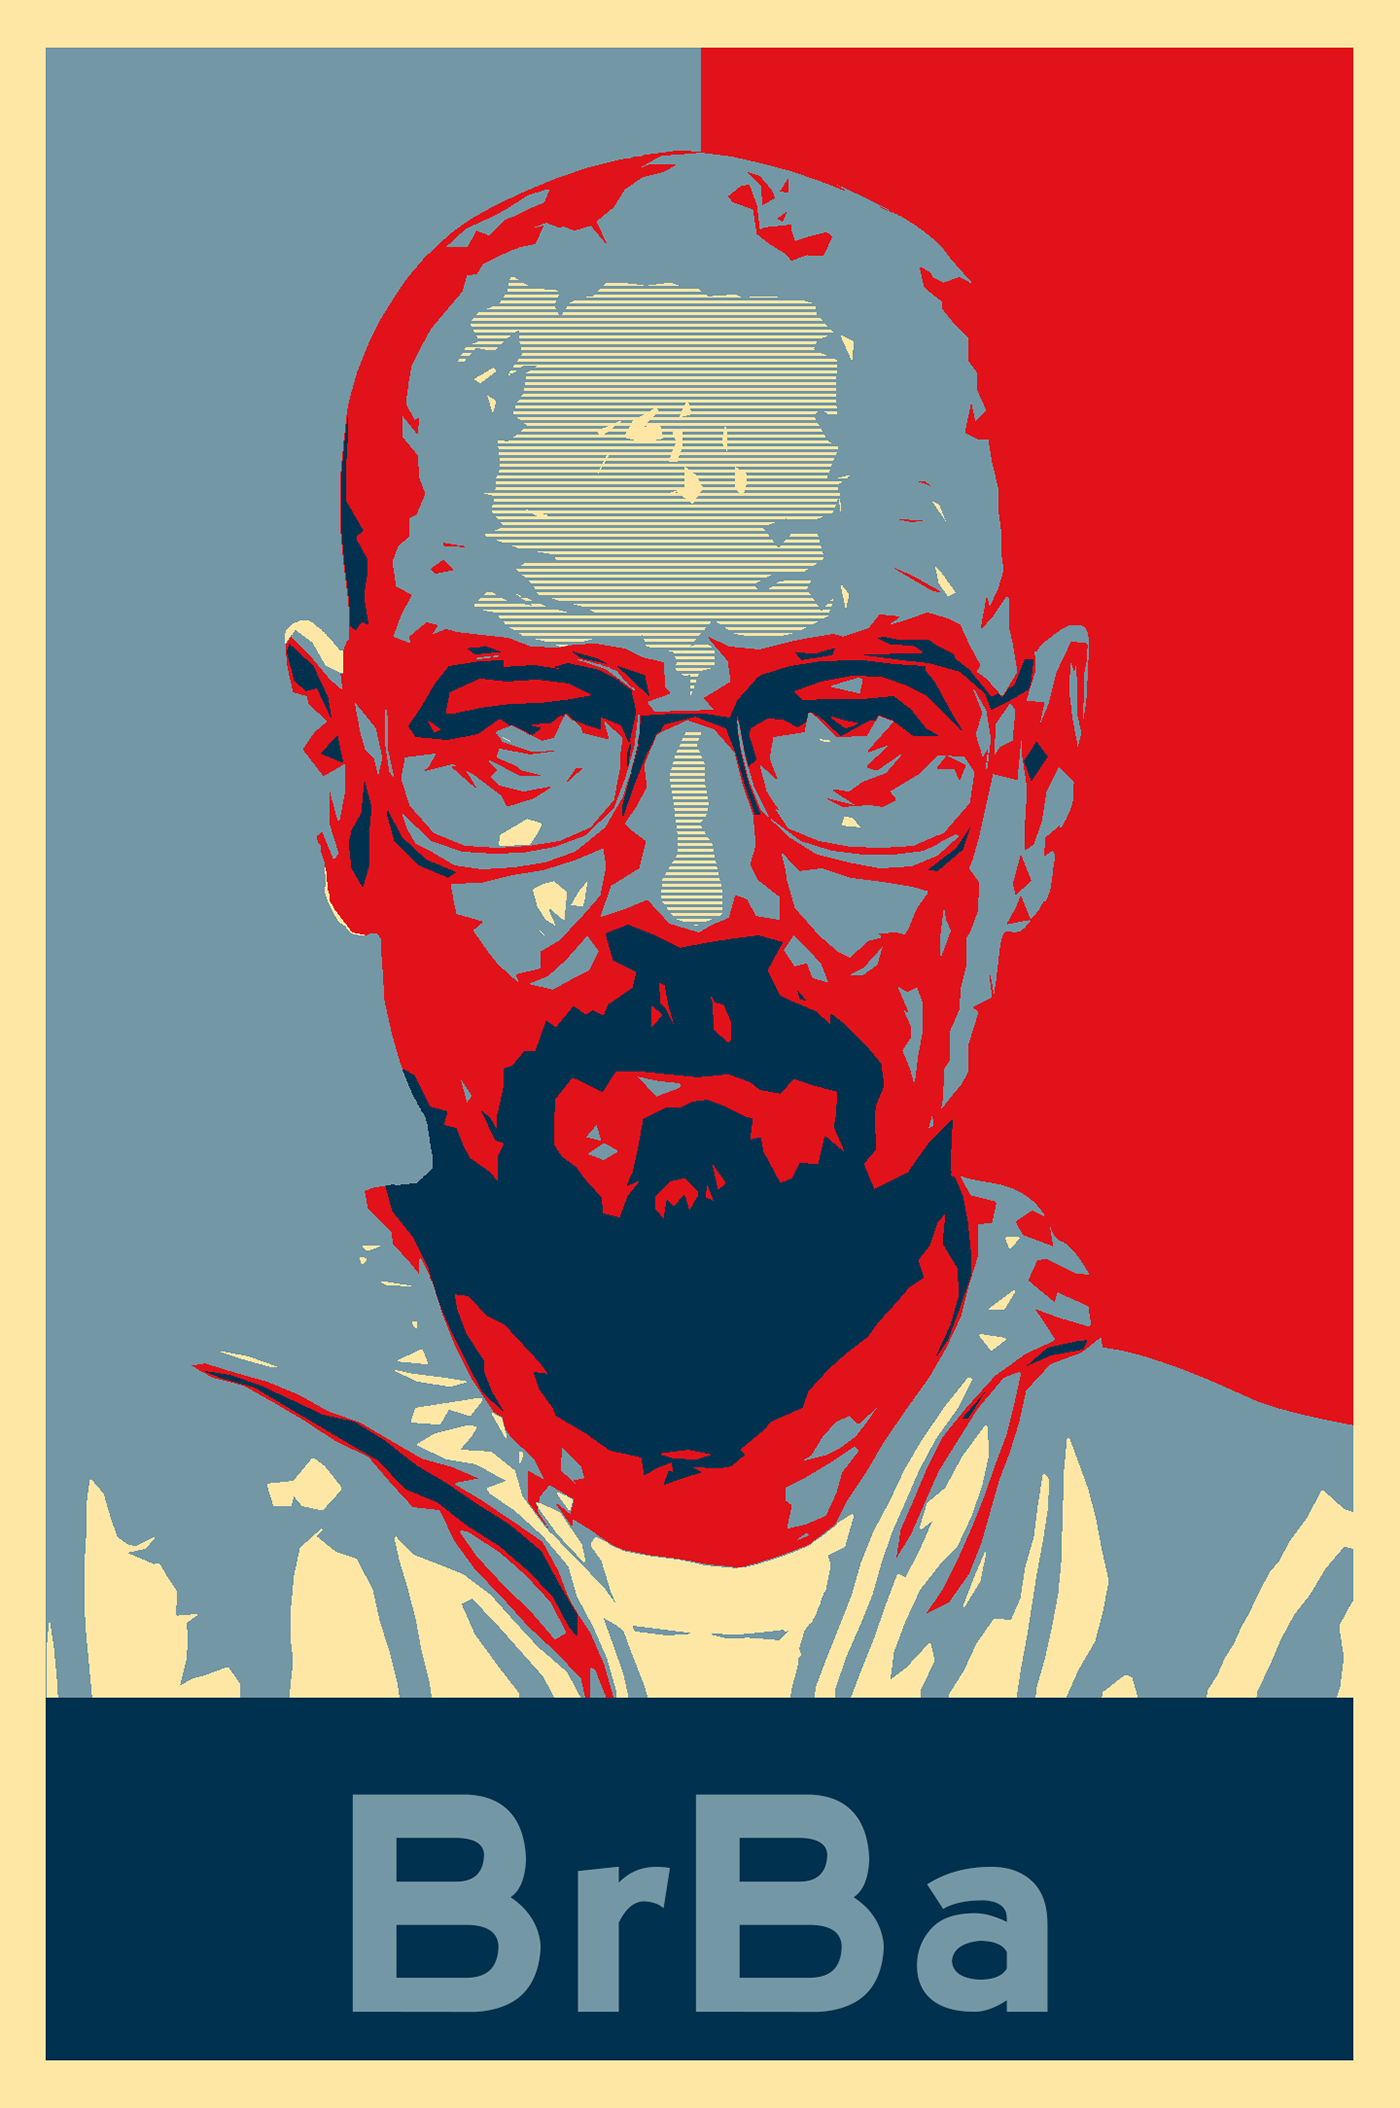 Obama's HOPE Poster - Breaking Bad Style on Behance